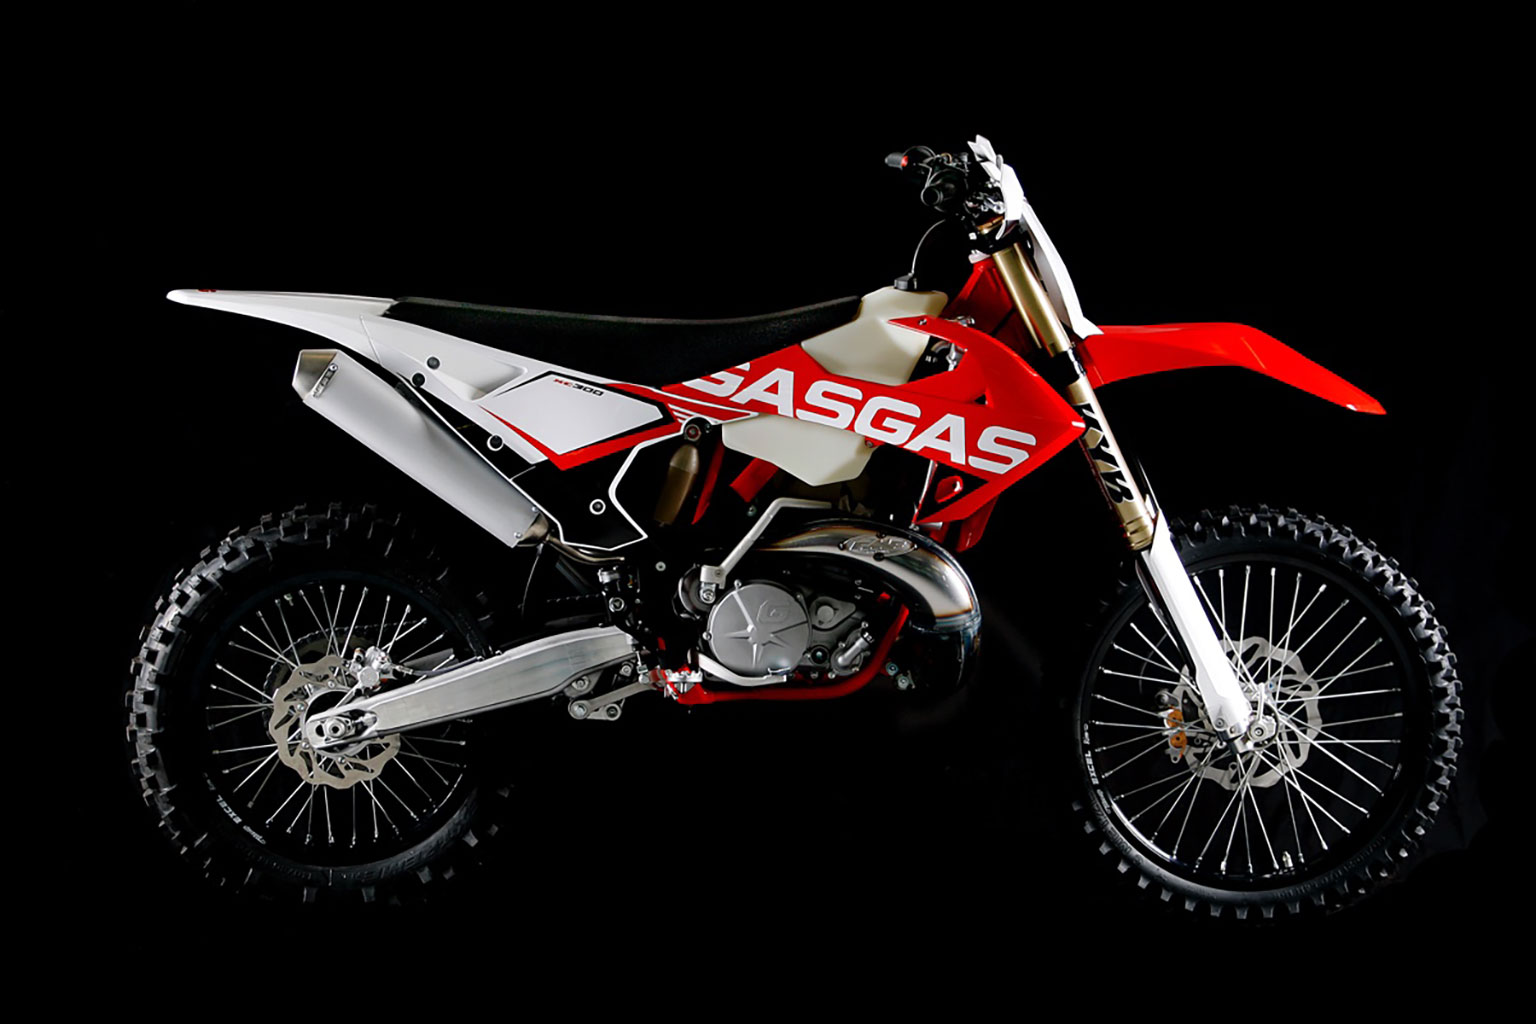 Gas Gas returns with an all-new enduro machine